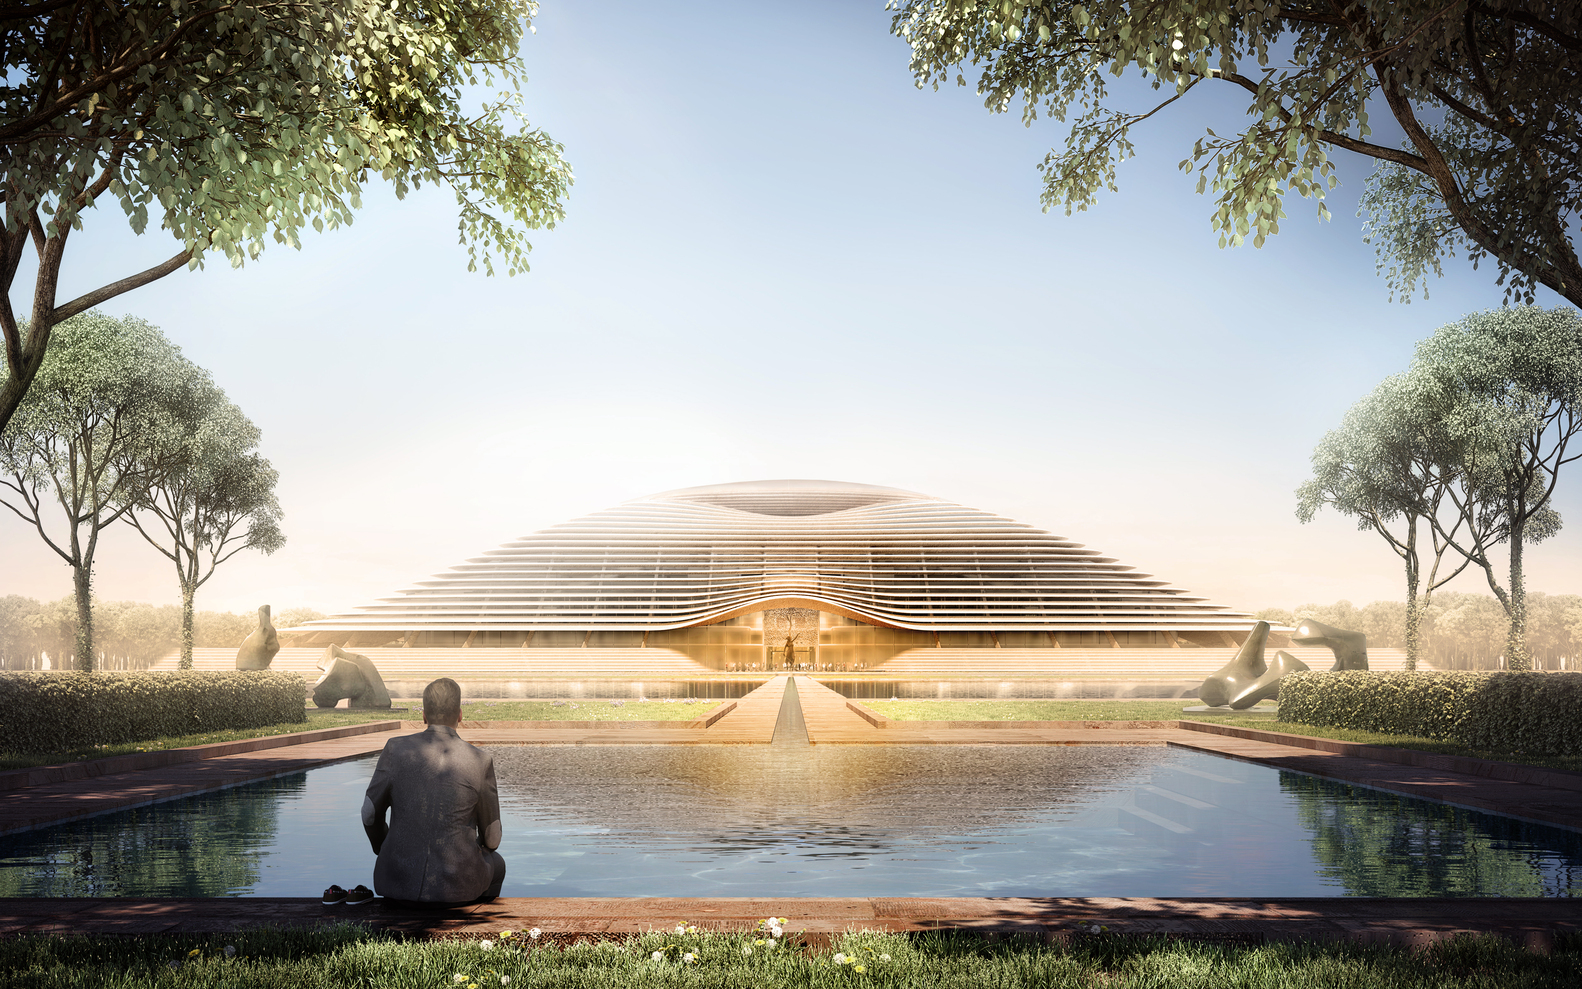 Foster + Partners Designs for Amaravati, the New Capital of Andhra Pradesh - IGS Magazine - 1